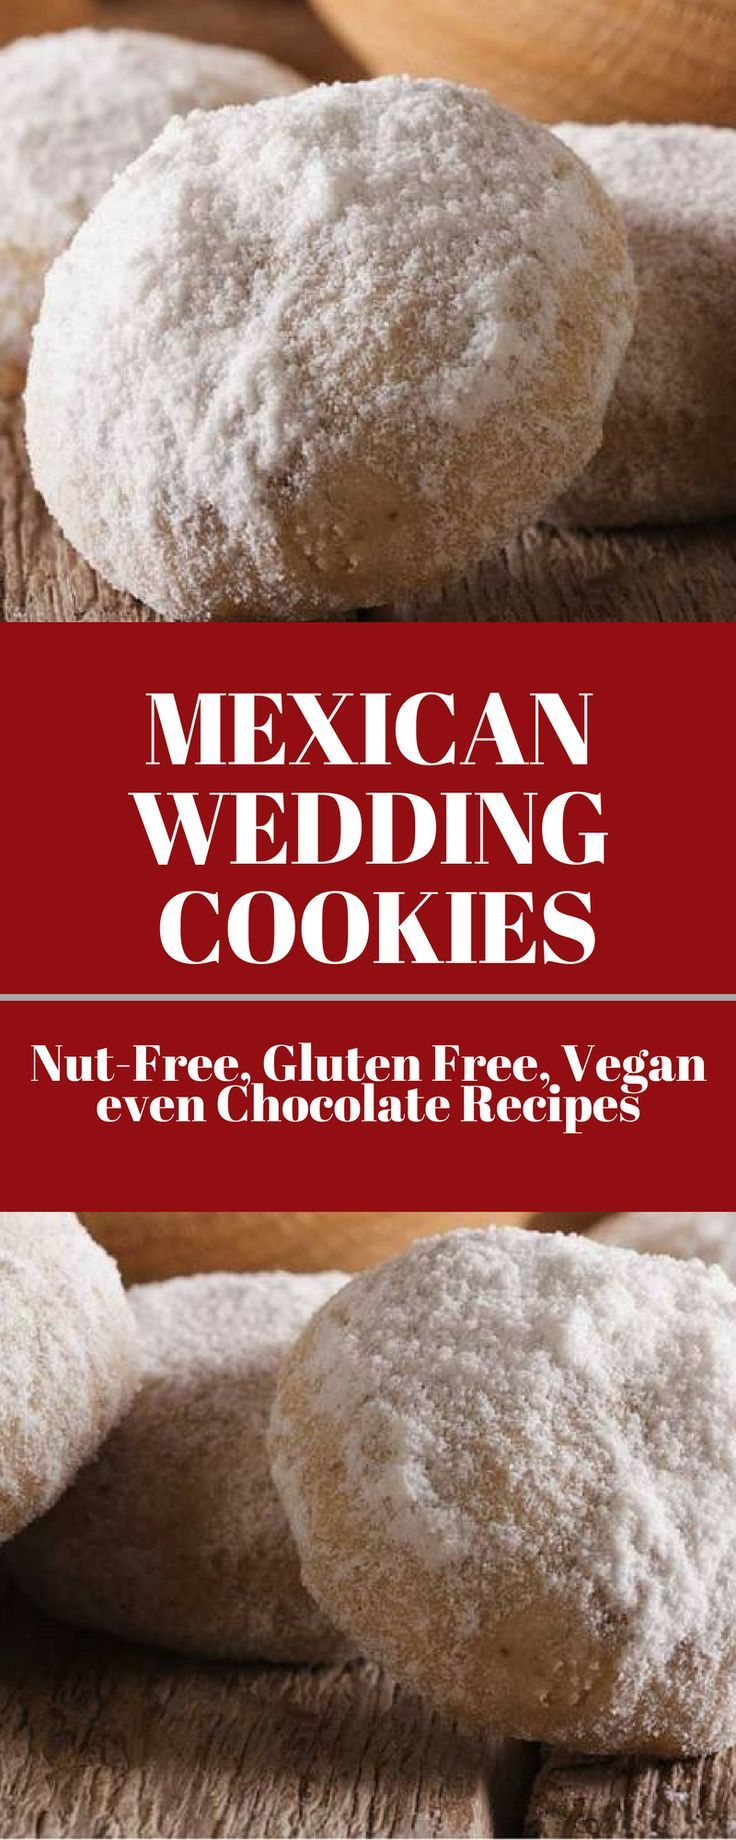 Best 25+ Mexican wedding cookies ideas on Pinterest | Mexican ...